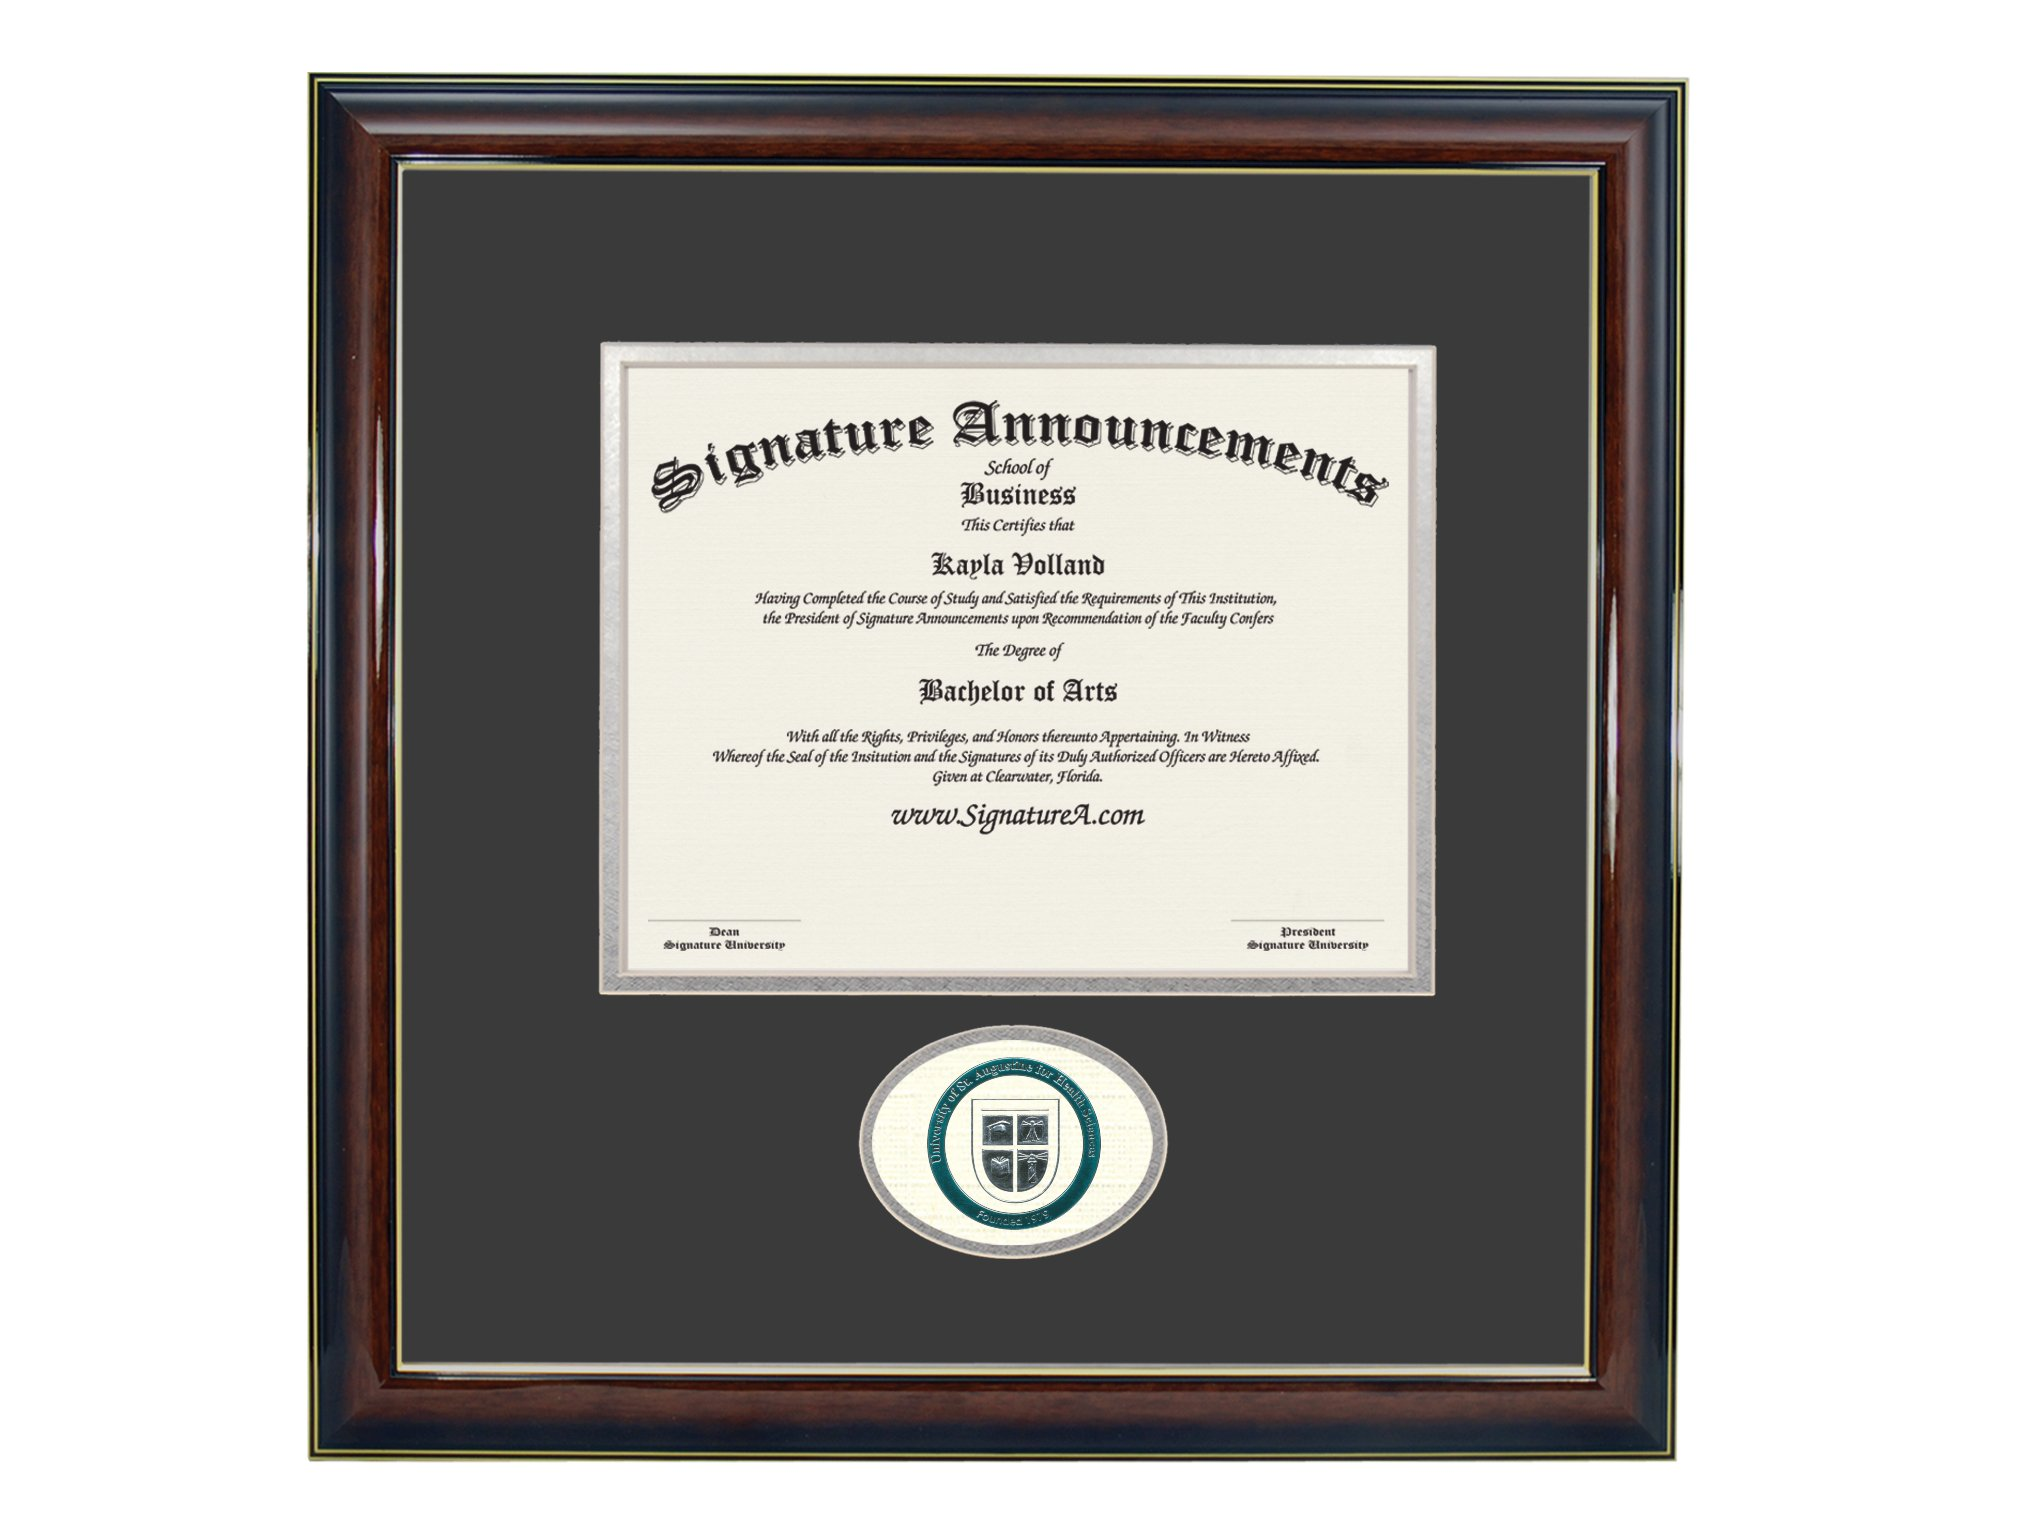 Signature Announcements University-of-St-Augustine-for-Health-Sciences-Master's Undergraduate, Graduate/Professional/Doctor Sculpted Foil Seal Diploma Frame, 16'' x 16'', Gloss Mahogany with Gold Accent by Signature Announcements (Image #3)